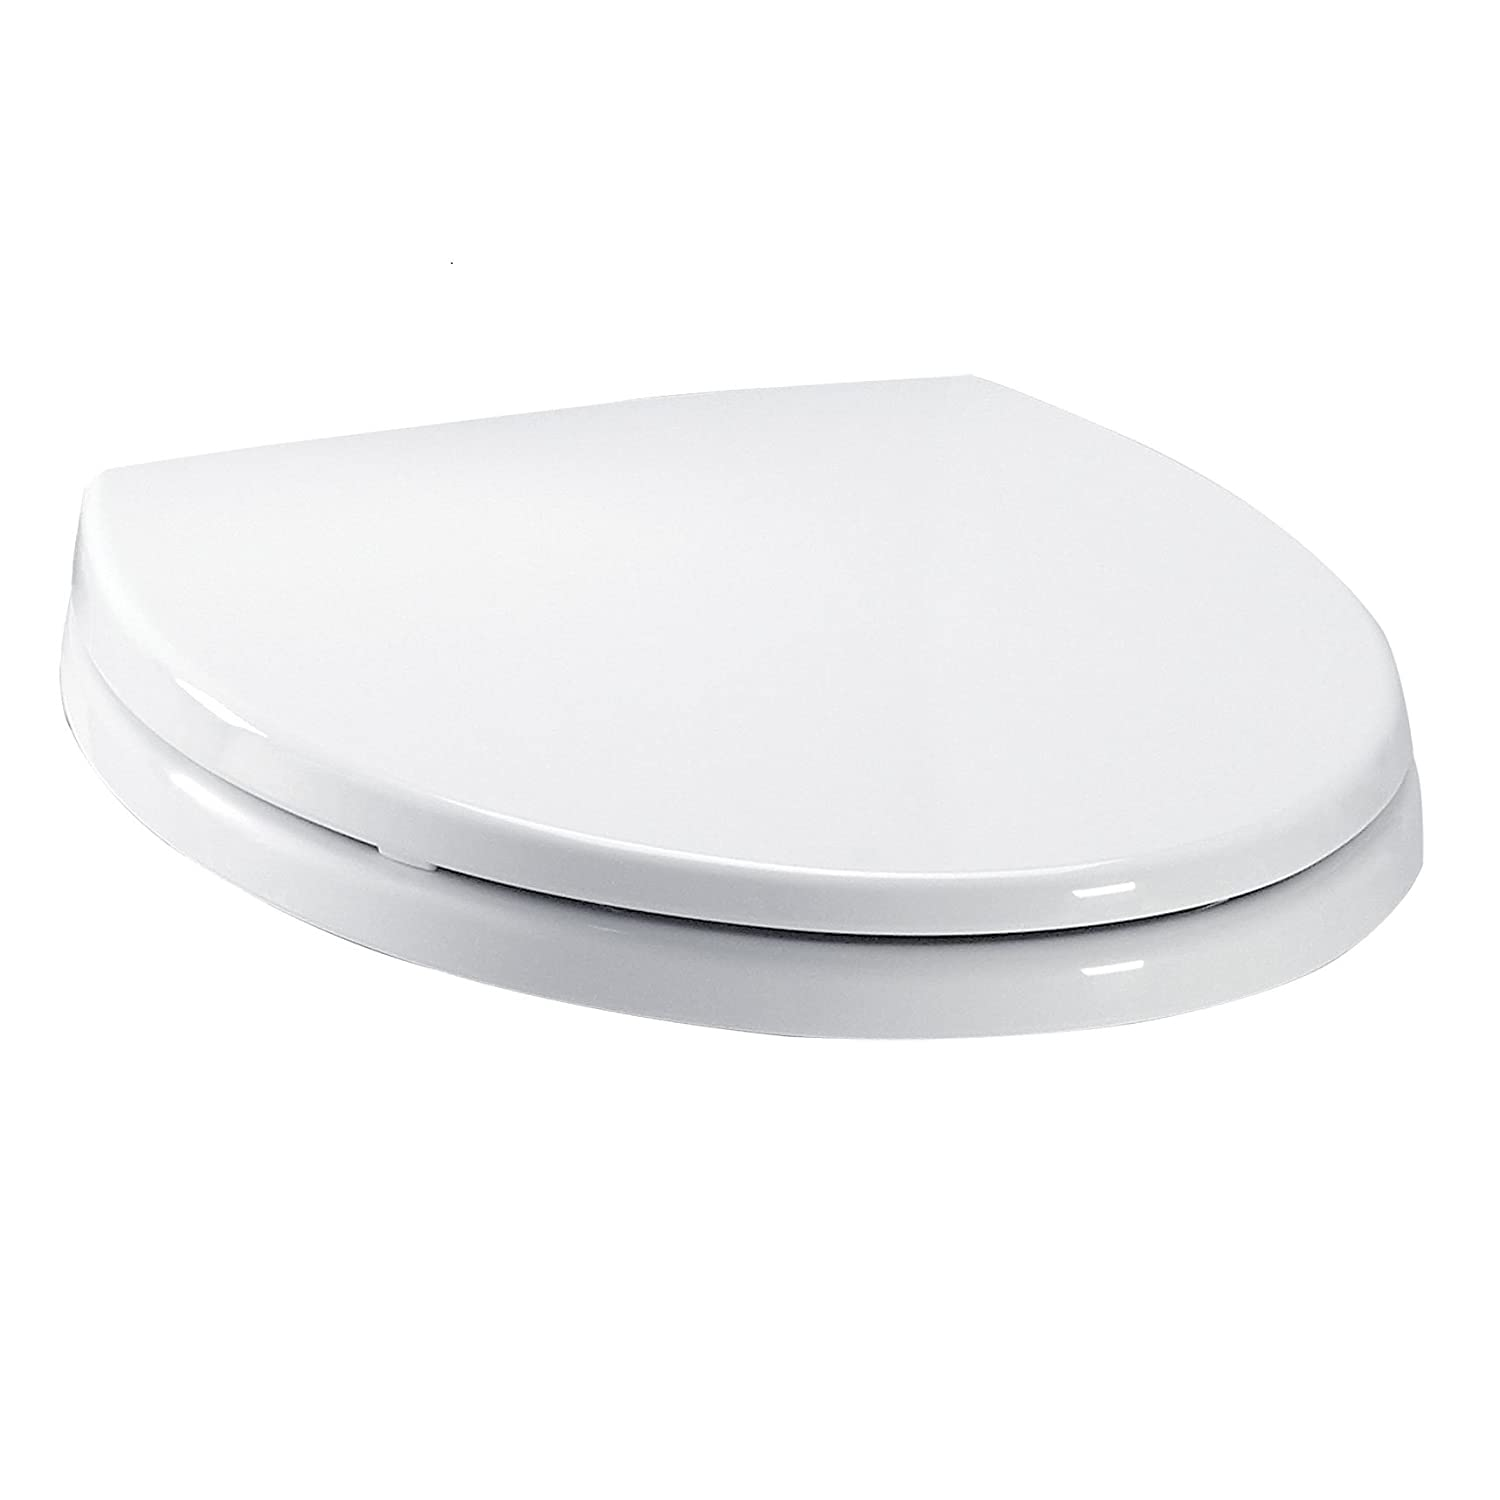 Best toilet on the market reviews - Toto Ss114 11 Transitional Softclose Elongated Toilet Seat